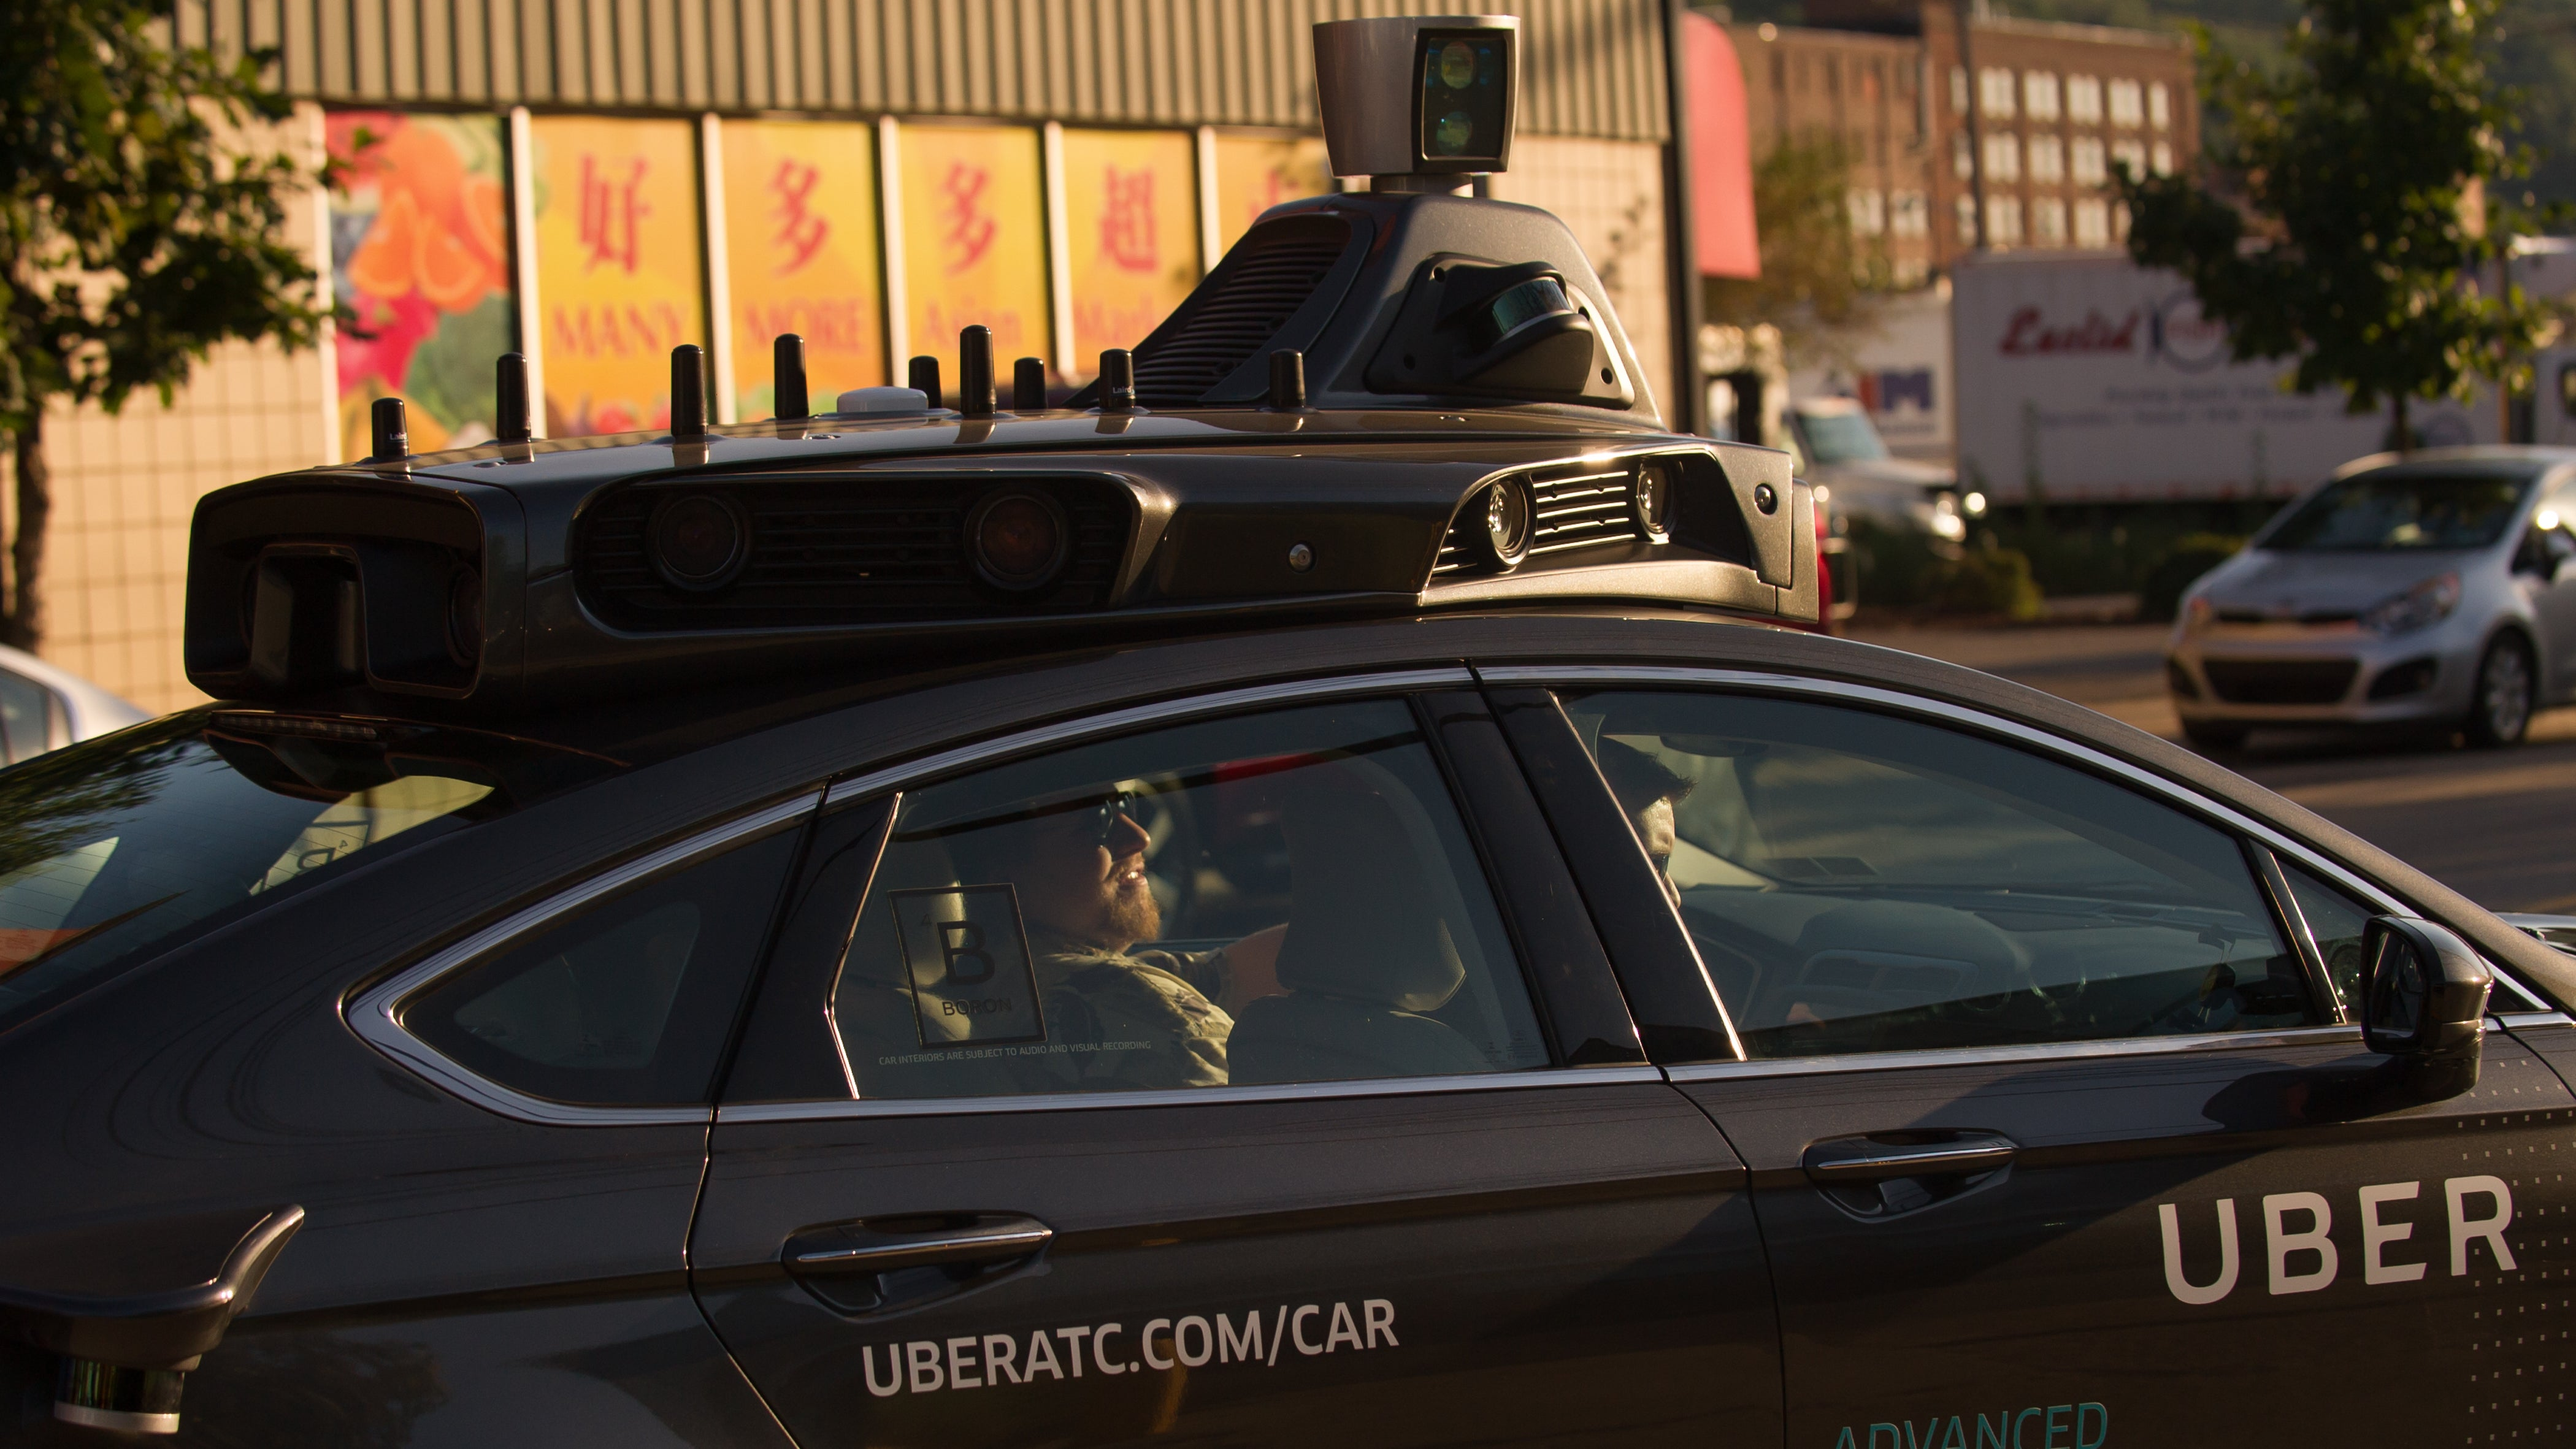 Emails Show Travis Kalanick Worried For Years About Google's Self-Driving Car Efforts